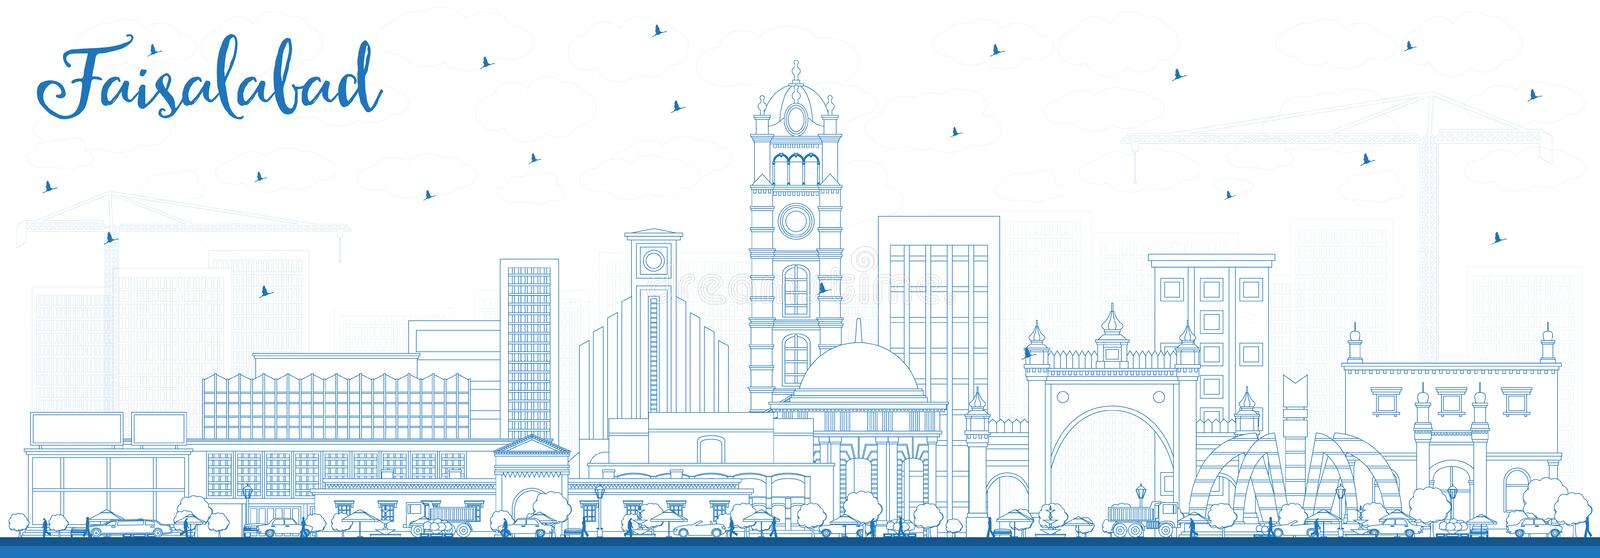 Outline Faisalabad Pakistan City Skyline with Blue Buildings. Vector Illustration. Business Travel and Tourism Concept with Modern Architecture. Faisalabad stock illustration